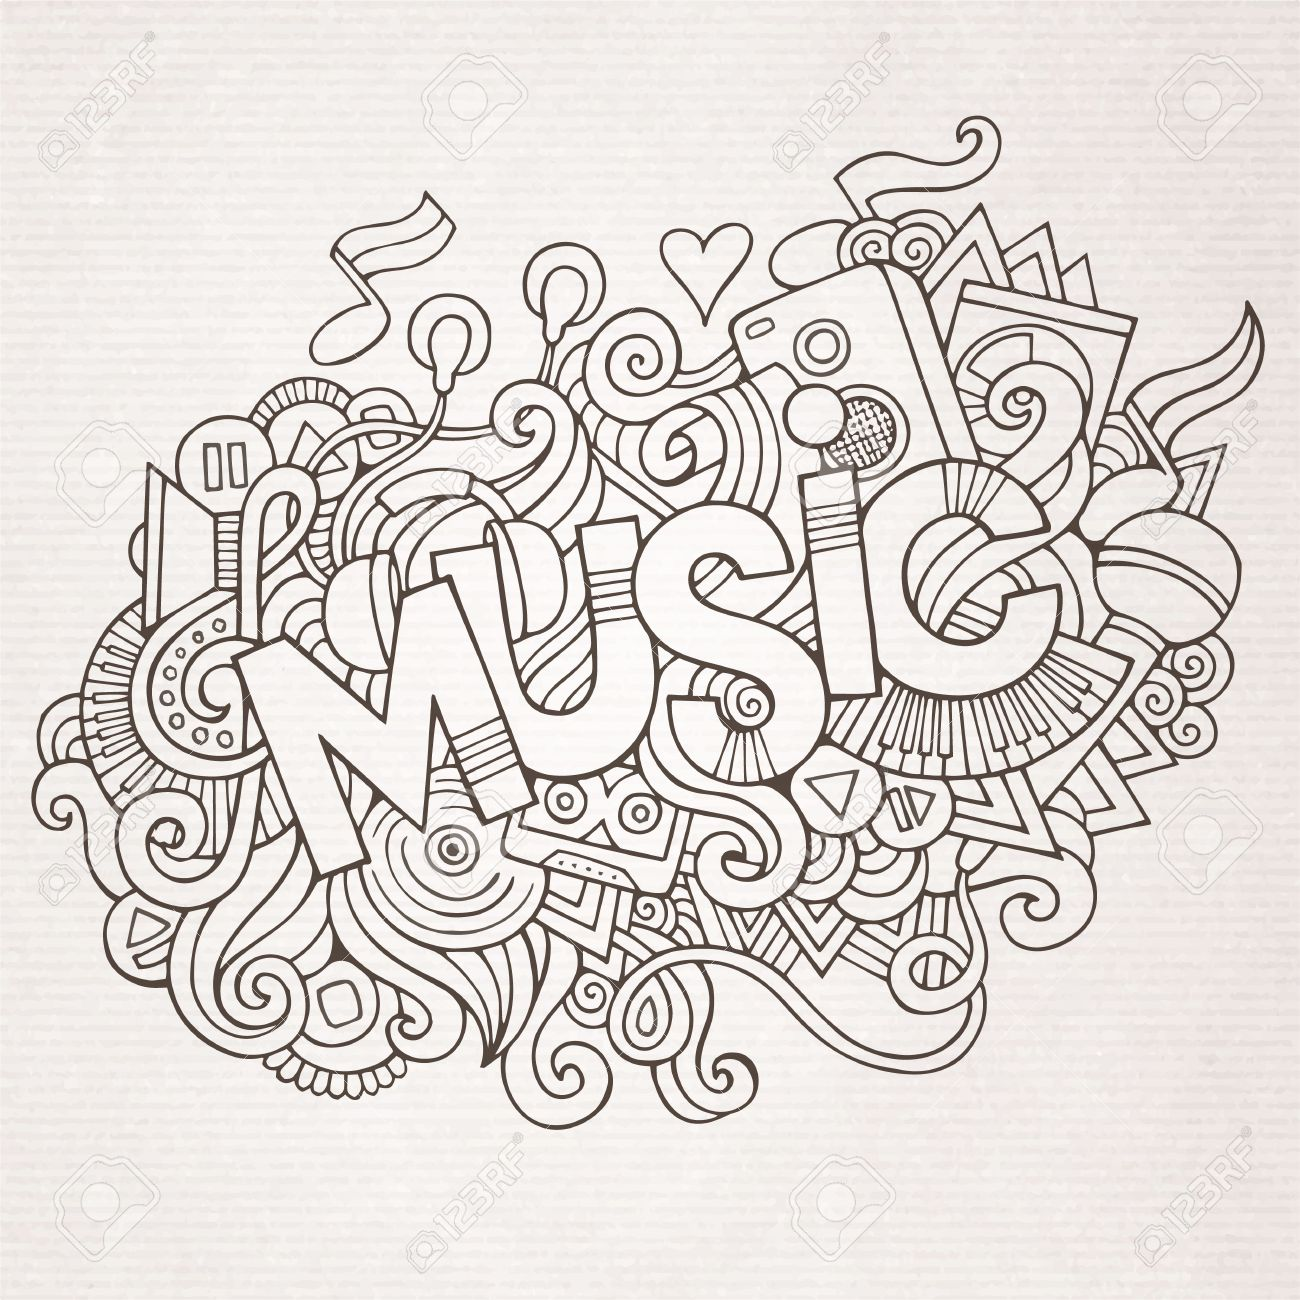 Stock vector music hand lettering and doodles elements - Music Hand Lettering And Doodles Elements And Symbols Background Vector Hand Drawn Sketchy Illustration Stock